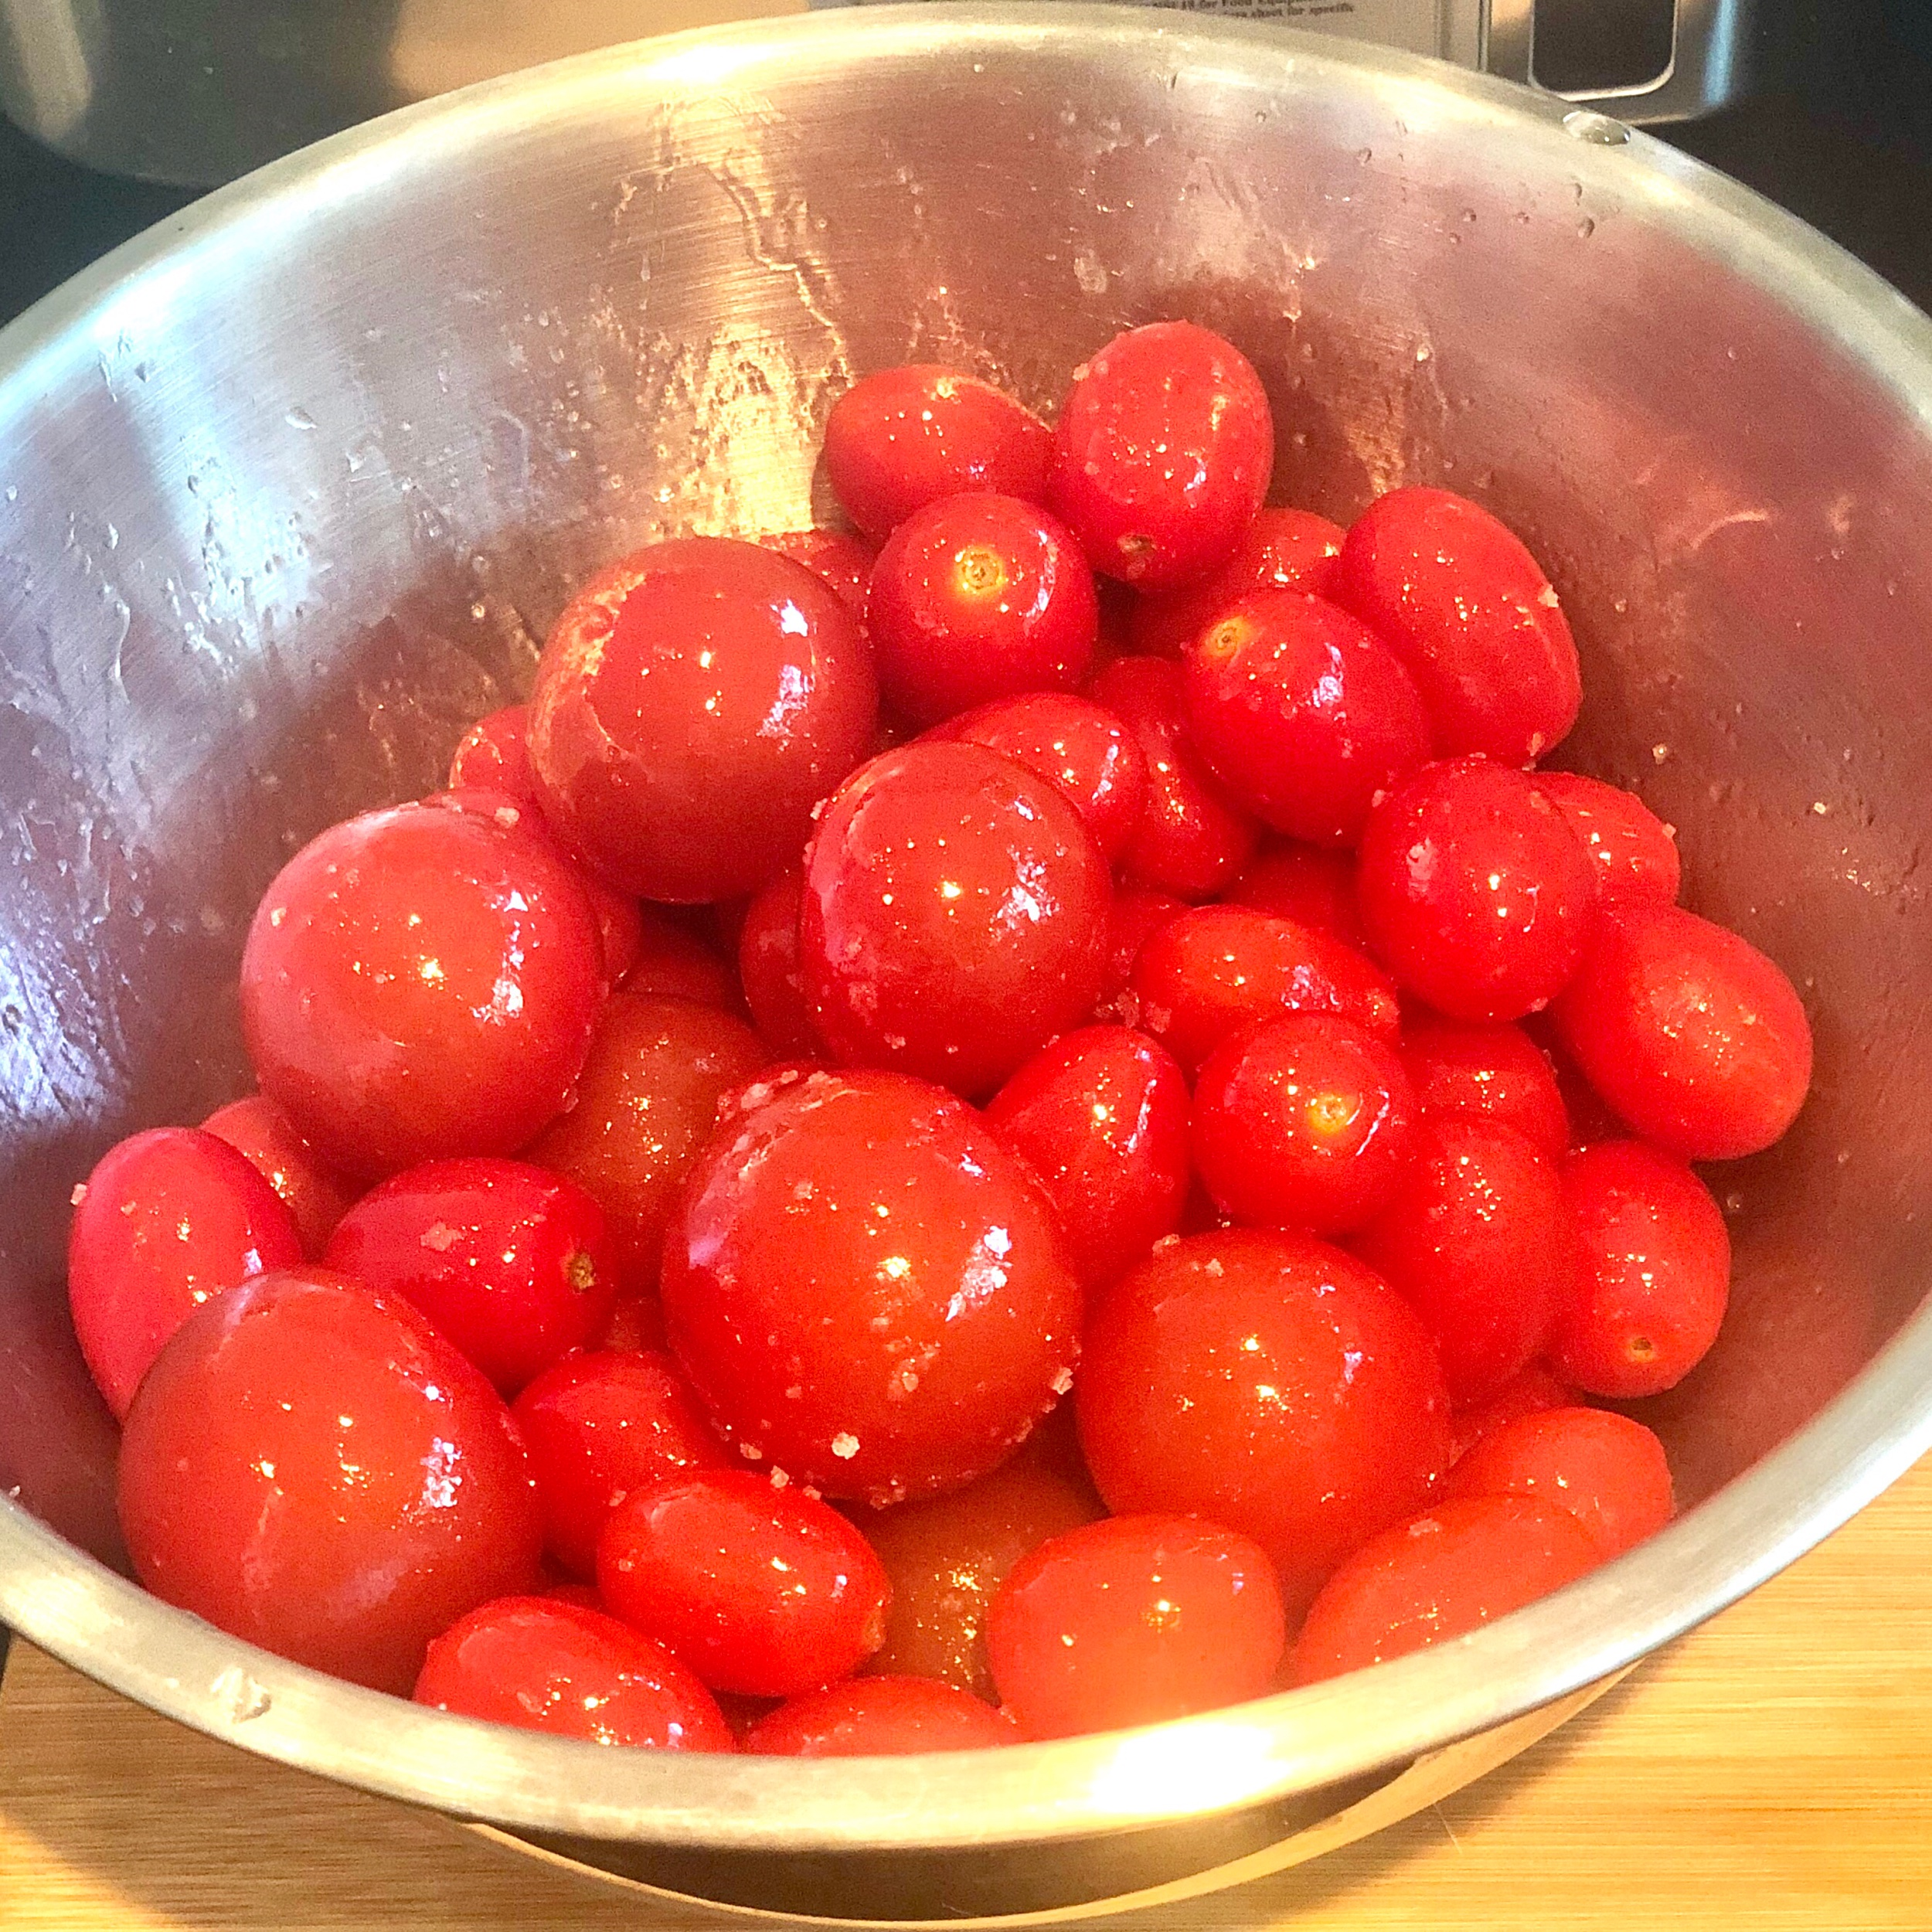 6. In a bowl, toss the whole cherry tomatoes in olive oil and salt. Scatter them around the pan.  CLICK HERE to buy a set of Stainless Steel mixing bowls  on Amazon.